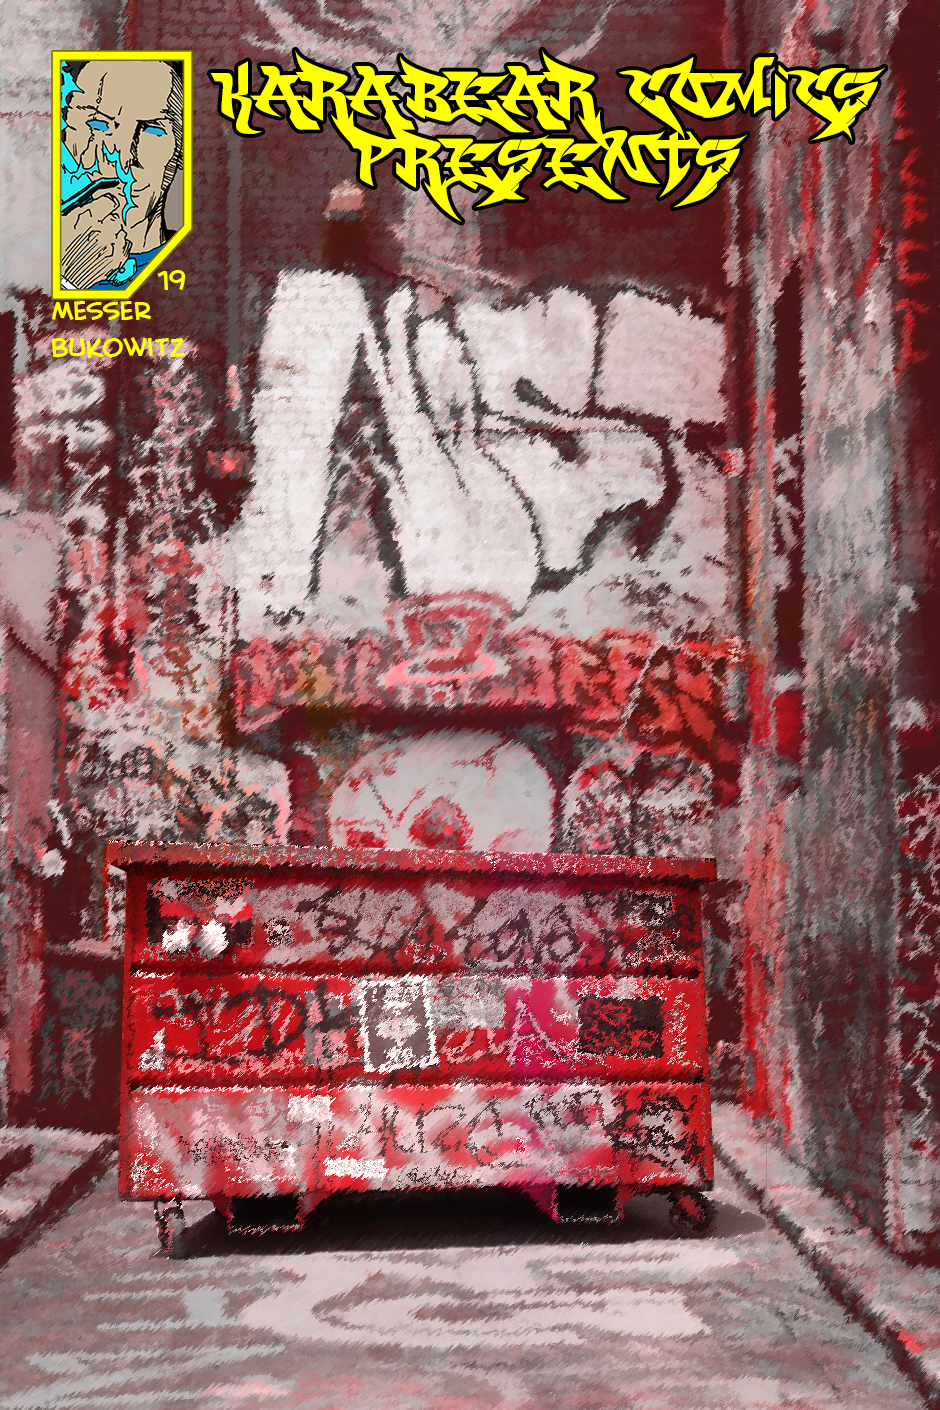 Issue 19: Red Alley Gang - Cover